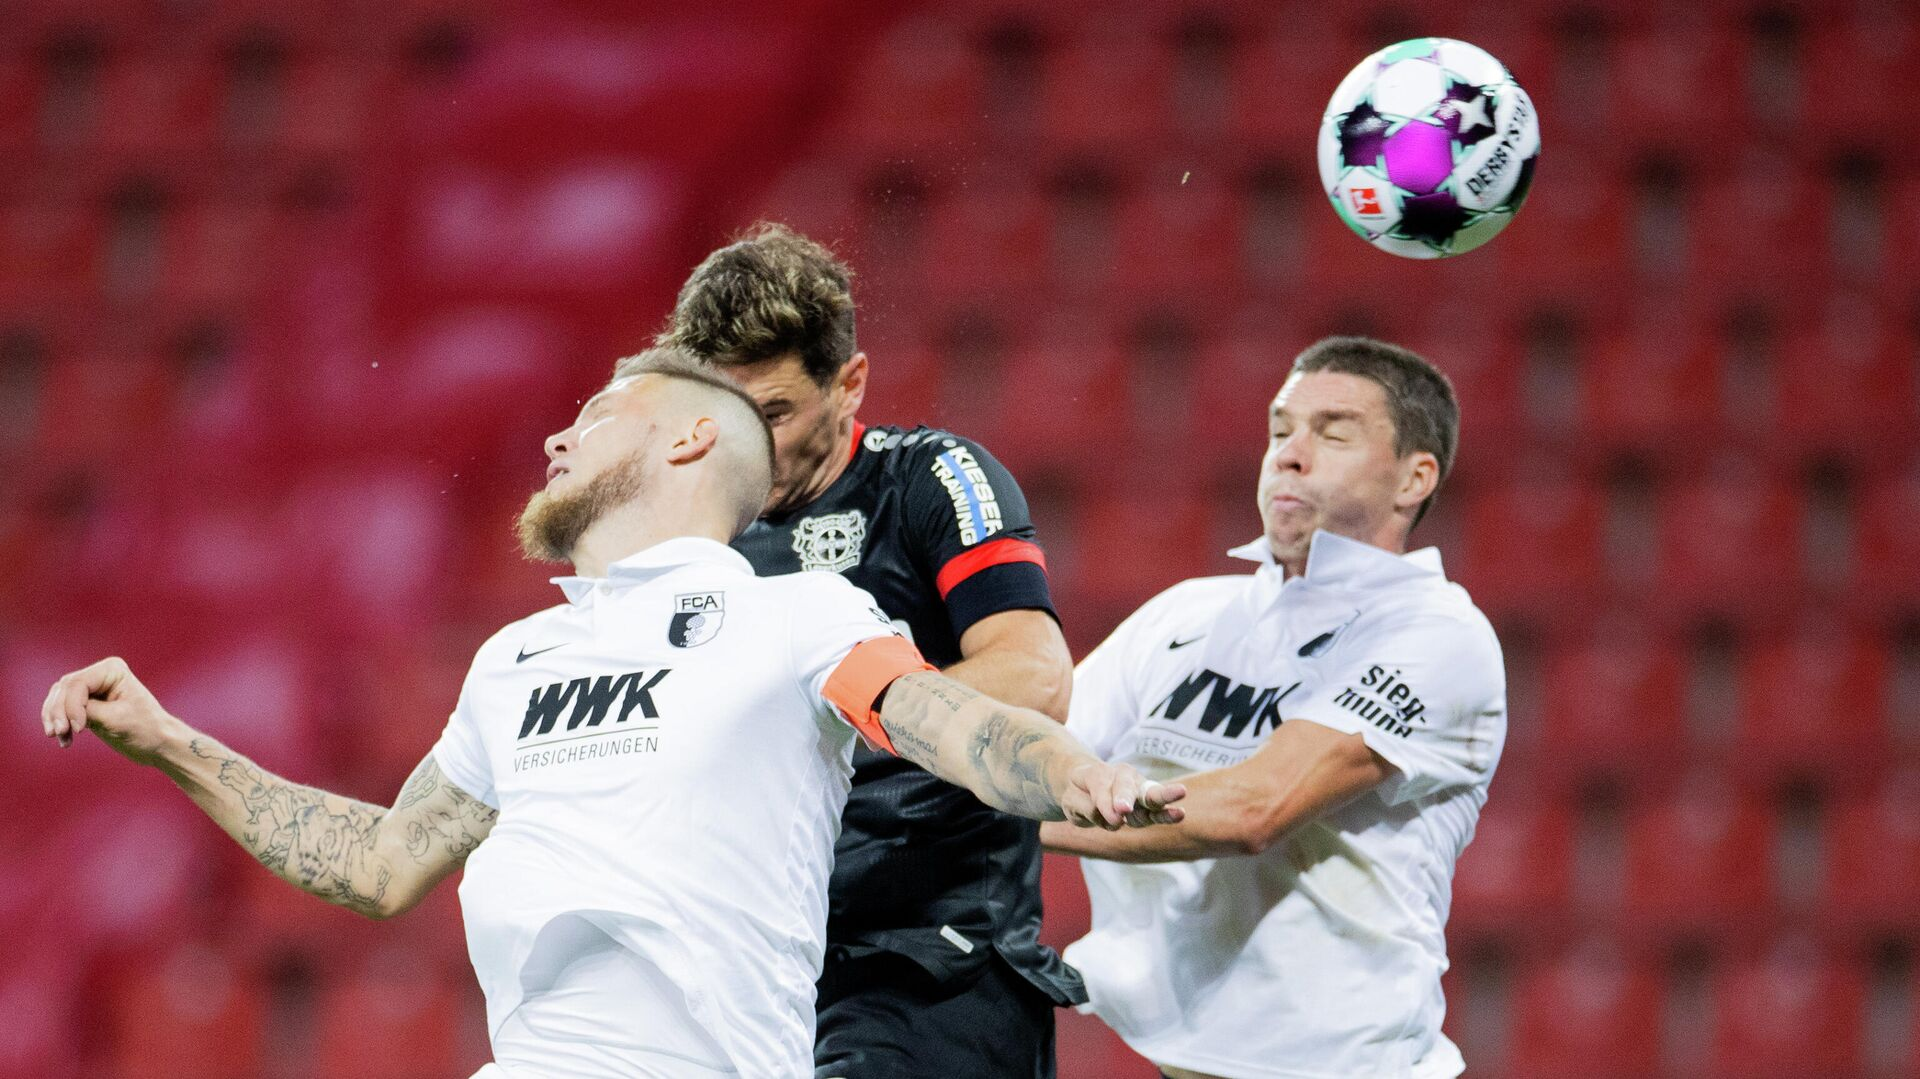 Leverkusen's Italian forward Lucas Alario (M), Augsburg's Dutch defender Jeffrey Gouweleeuw (L) and Augsburg's German defender Raphael Framberger vie for the ball during the German first division Bundesliga football match Bayer 04 Leverkusen v FC Augsburg, in Leverkusen, western Germany, on October 26, 2020. (Photo by Rolf Vennenbernd / POOL / AFP) / DFL REGULATIONS PROHIBIT ANY USE OF PHOTOGRAPHS AS IMAGE SEQUENCES AND/OR QUASI-VIDEO - РИА Новости, 1920, 27.10.2020